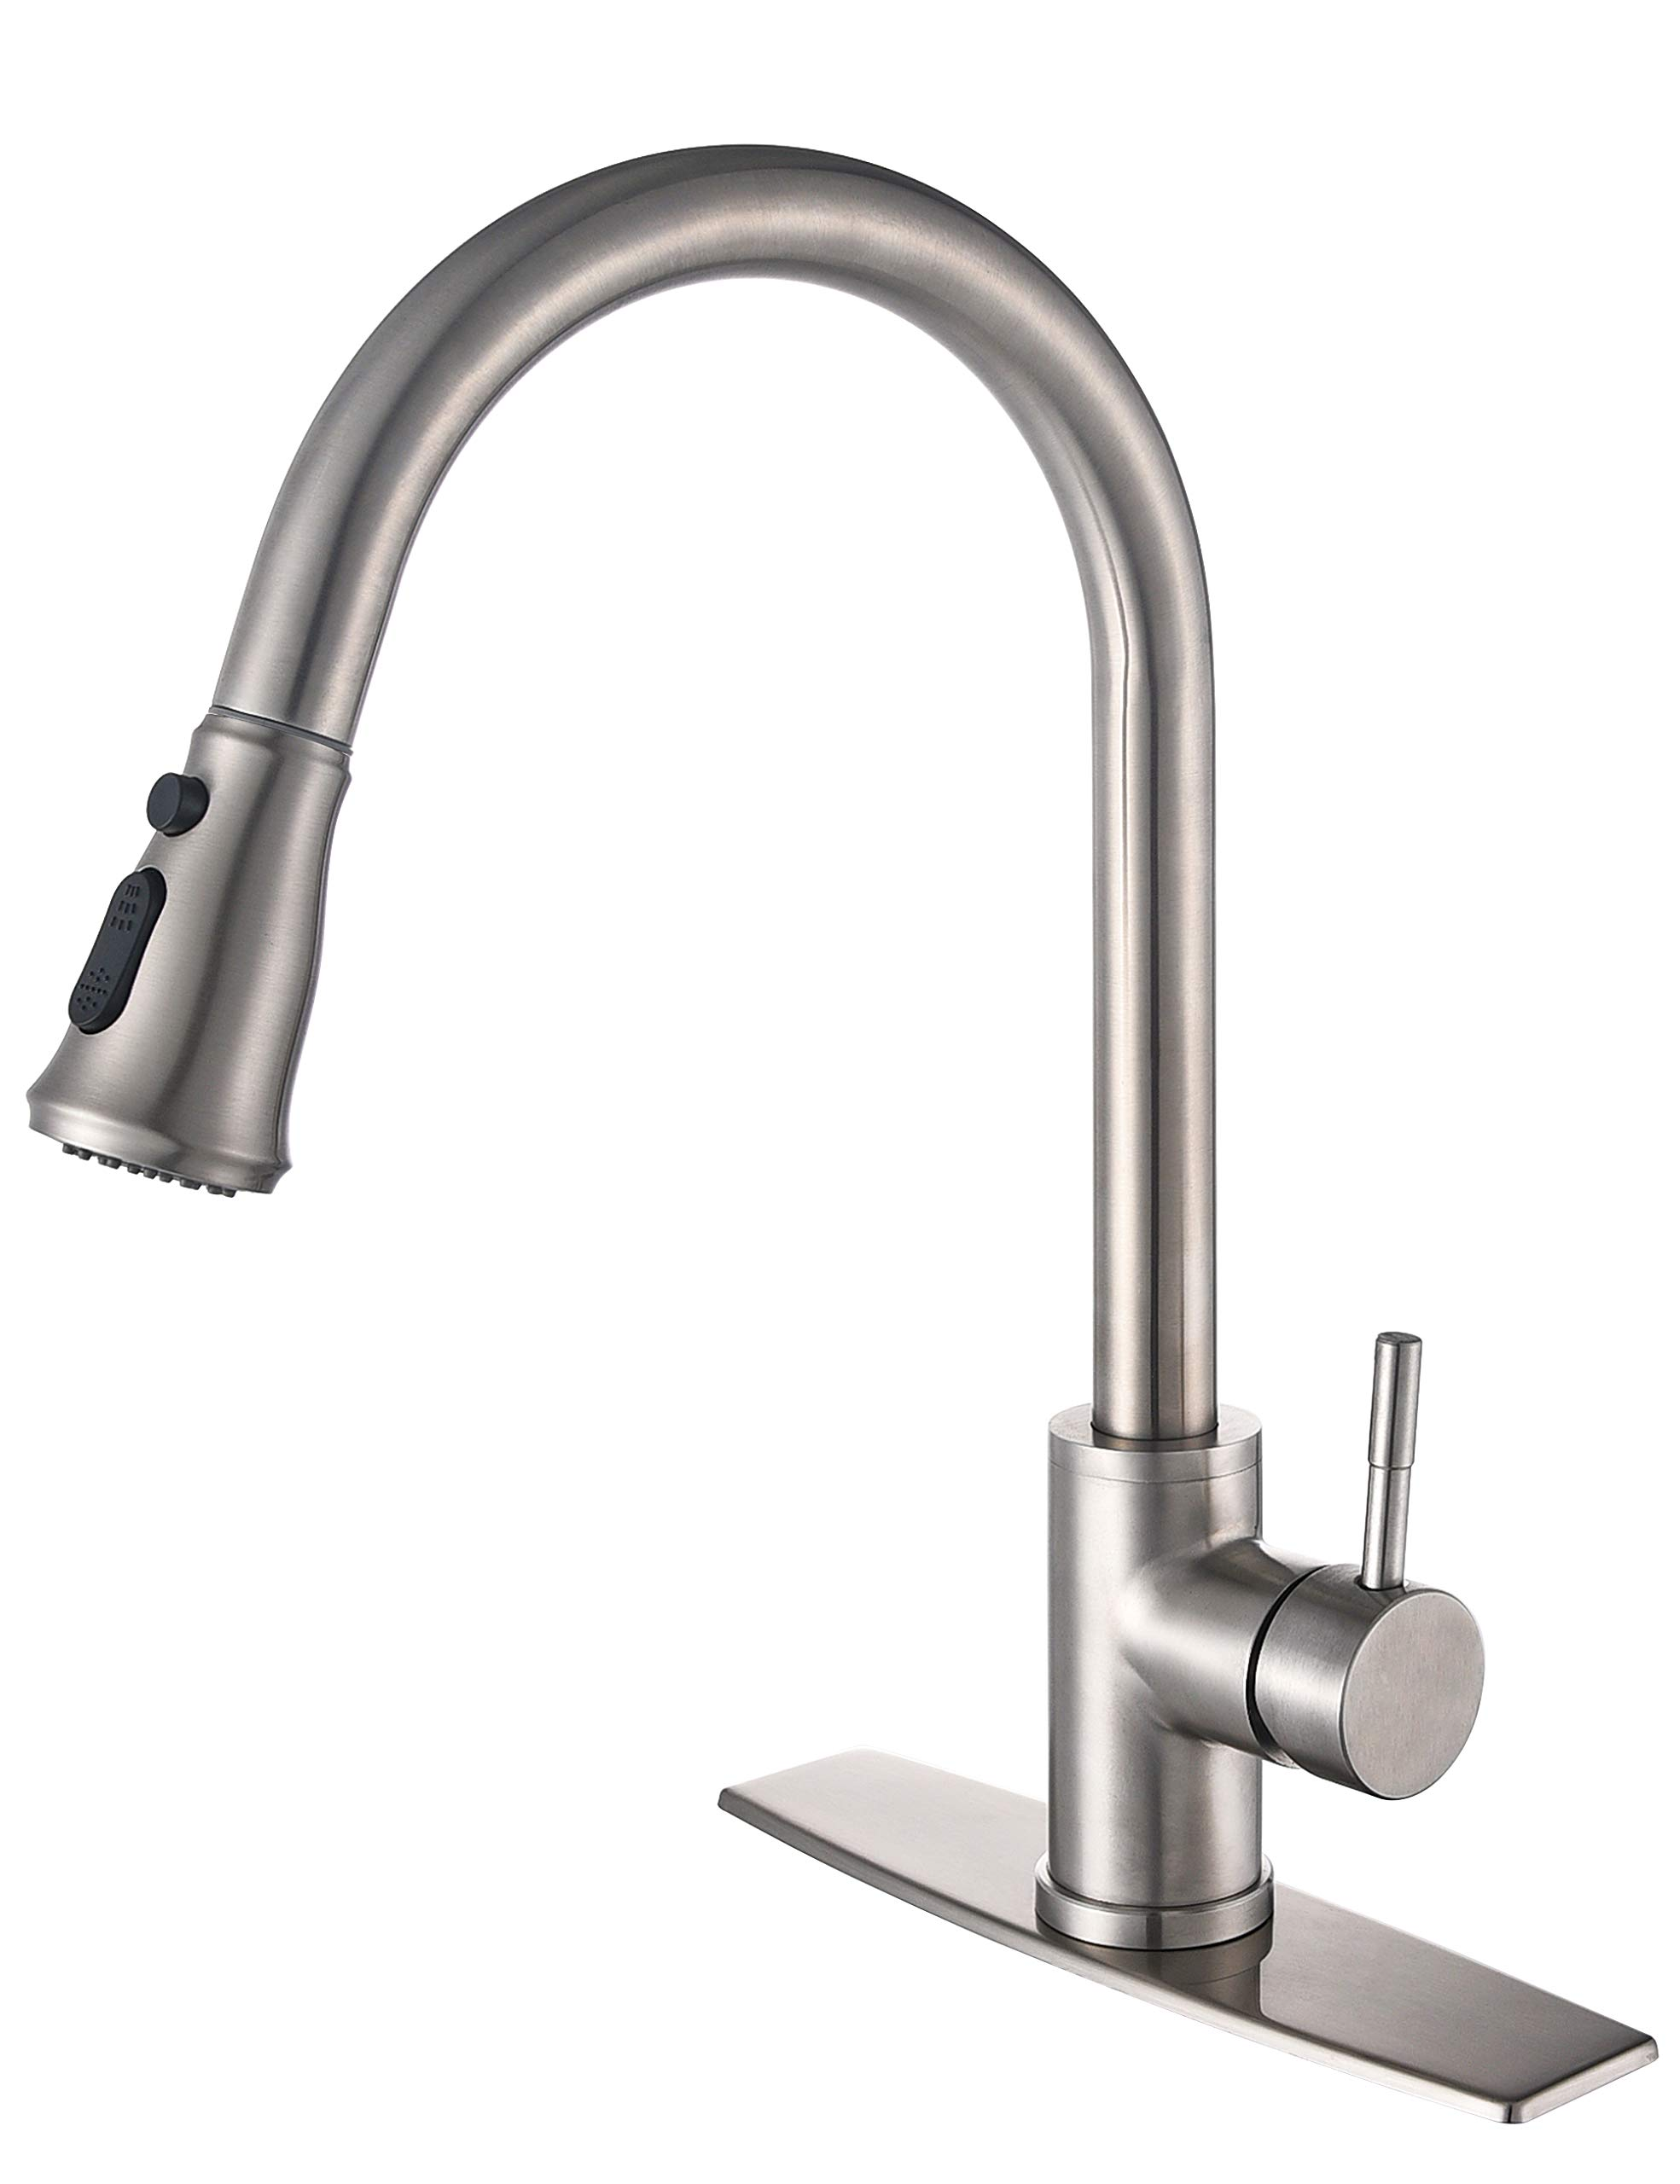 MYHB Kitchen Sink Faucet Brushed Nickel with Pull Down Sprayer Single Handle Lever High Arc 304 Stainless Steel, HY0716 by MYHB